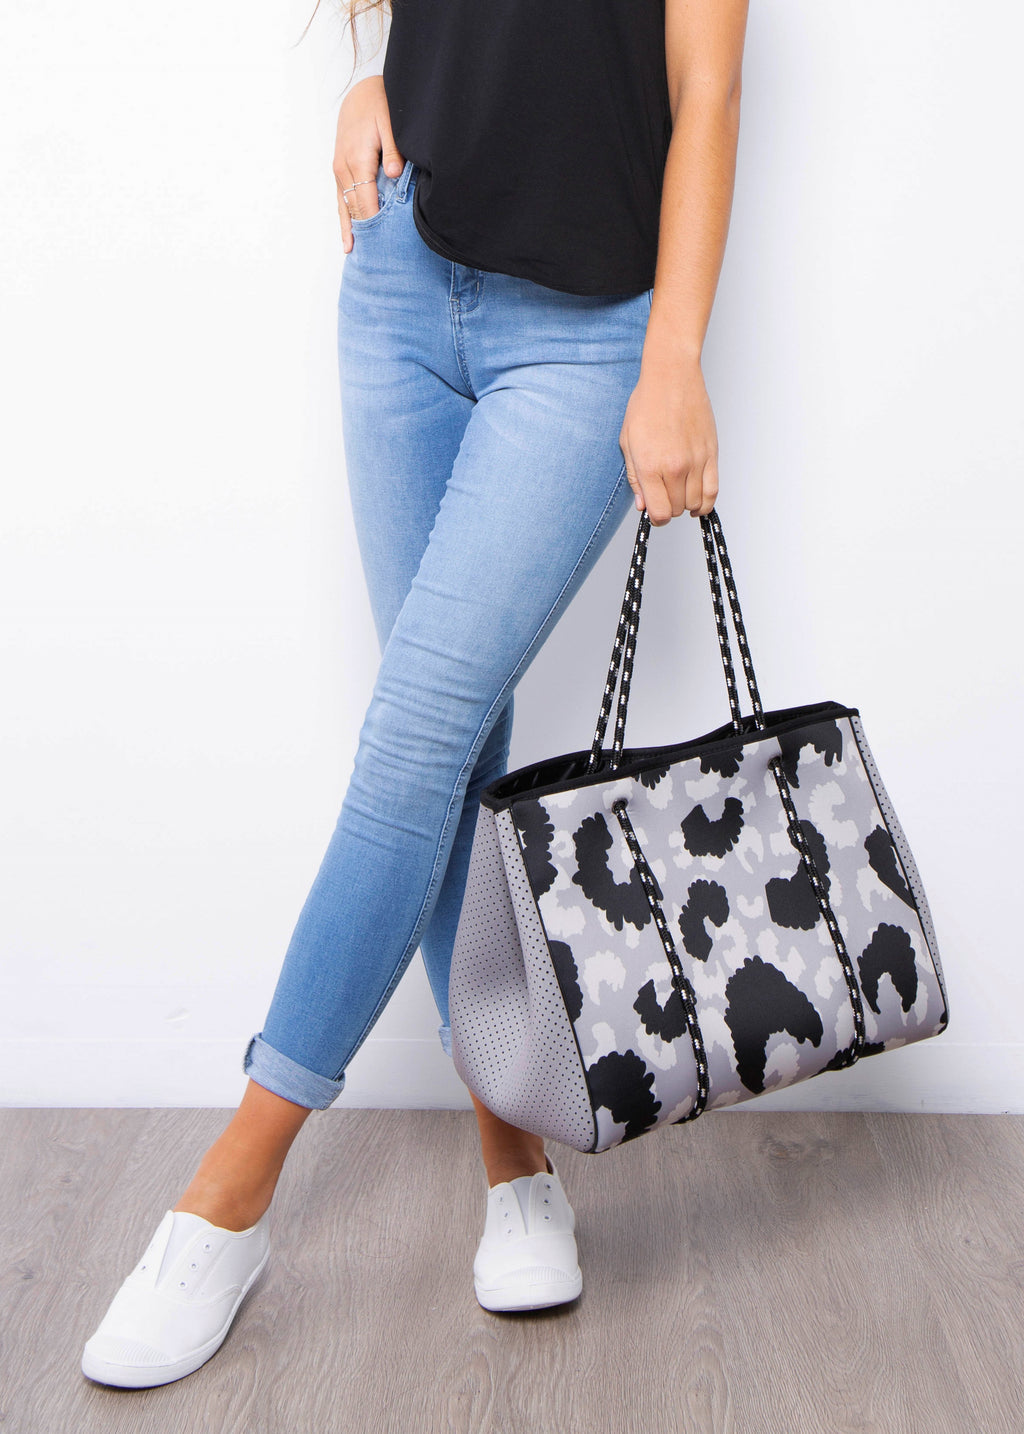 AVA NEOPRENE BAG - GREY LEOPARD